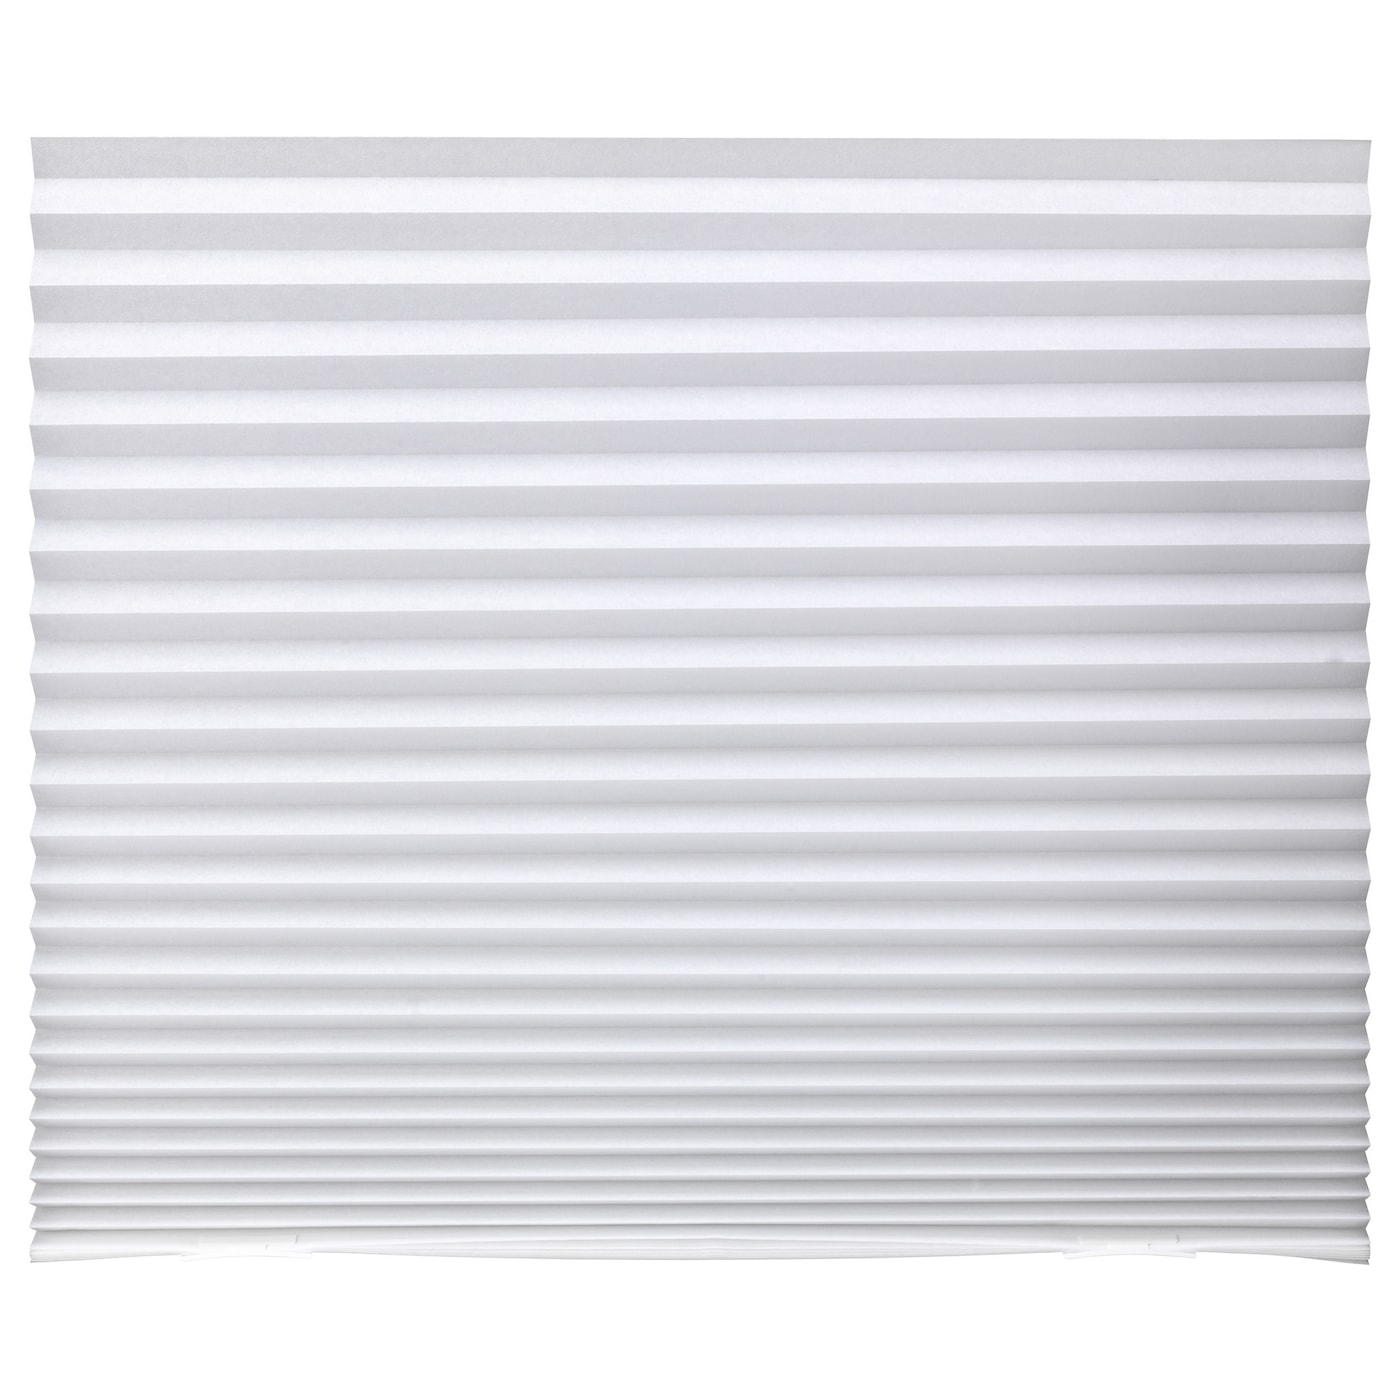 Schottis pleated blind white 90x190 cm ikea for Pleated shades ikea